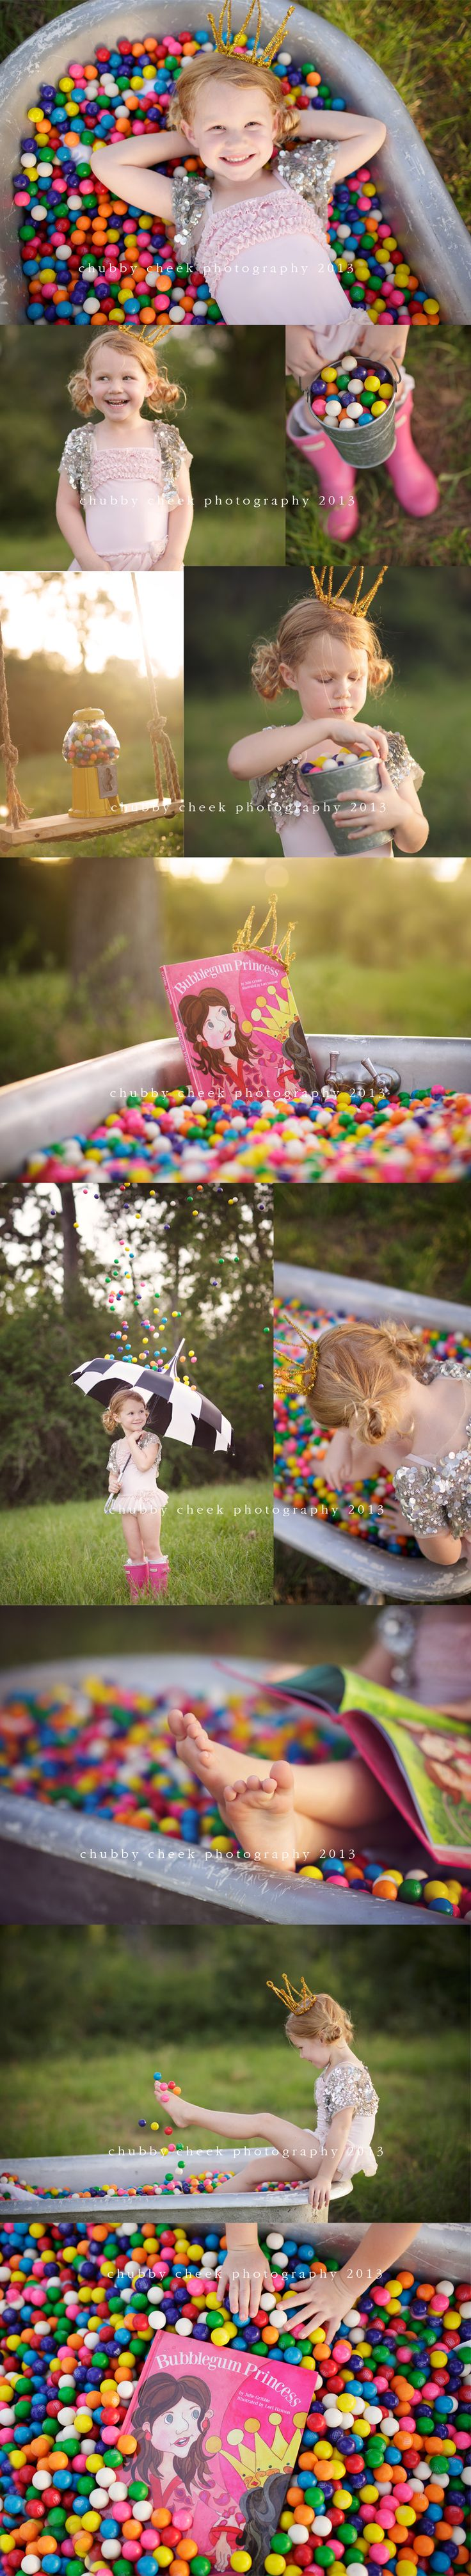 chubby cheek photography houston….what a cute idea!!! raining gum balls wearing rain boots and all ;)